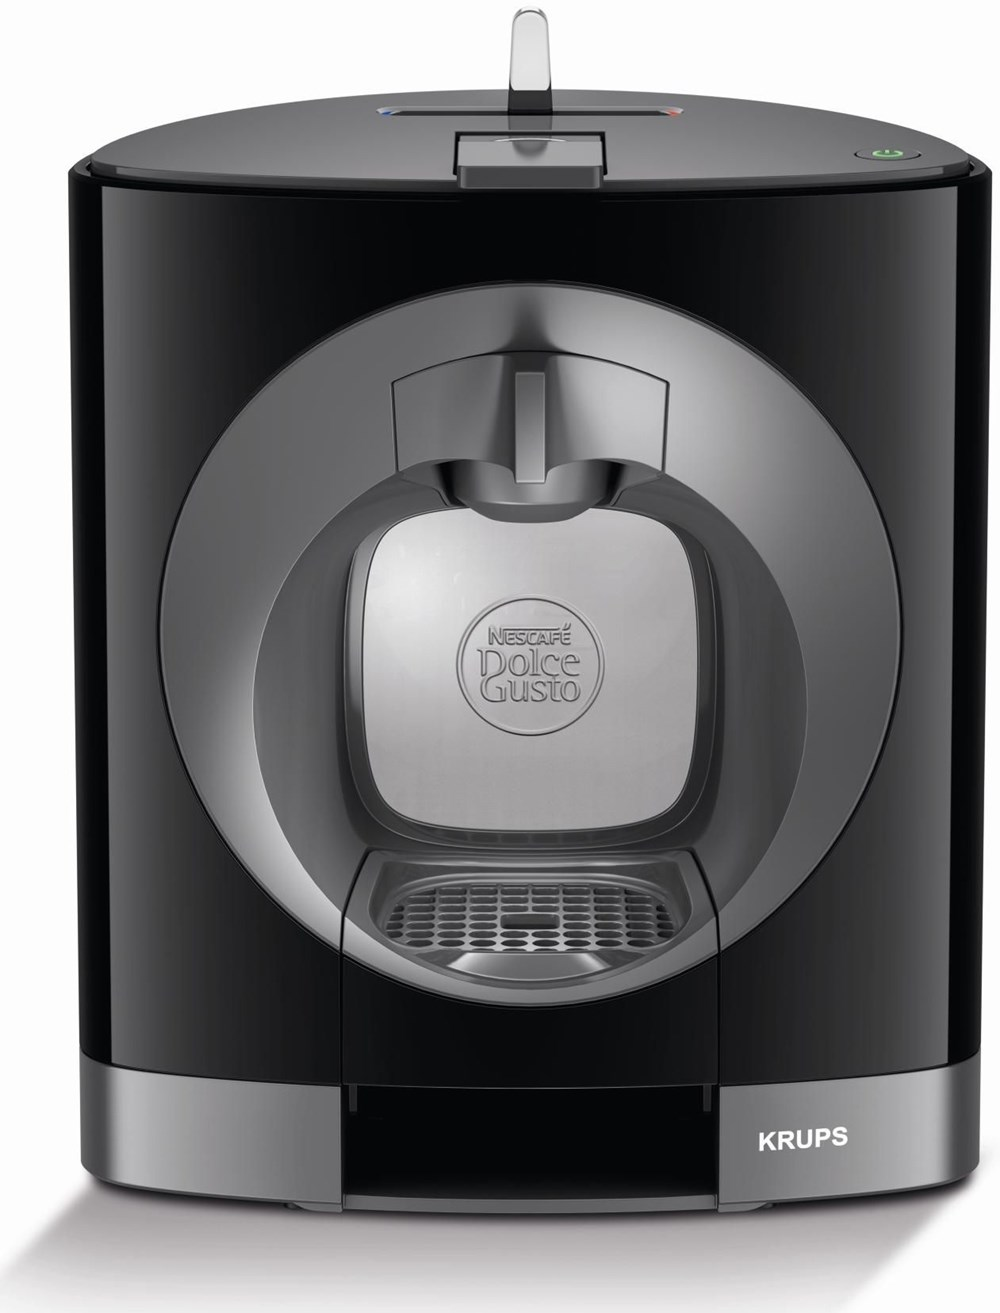 Krups Dolce Gusto Coffee Maker Reviews : Krups KP1108 Nescafe Dolce Gusto Oblo schwarz - Coffee Pod / Capsule Machines - computeruniverse